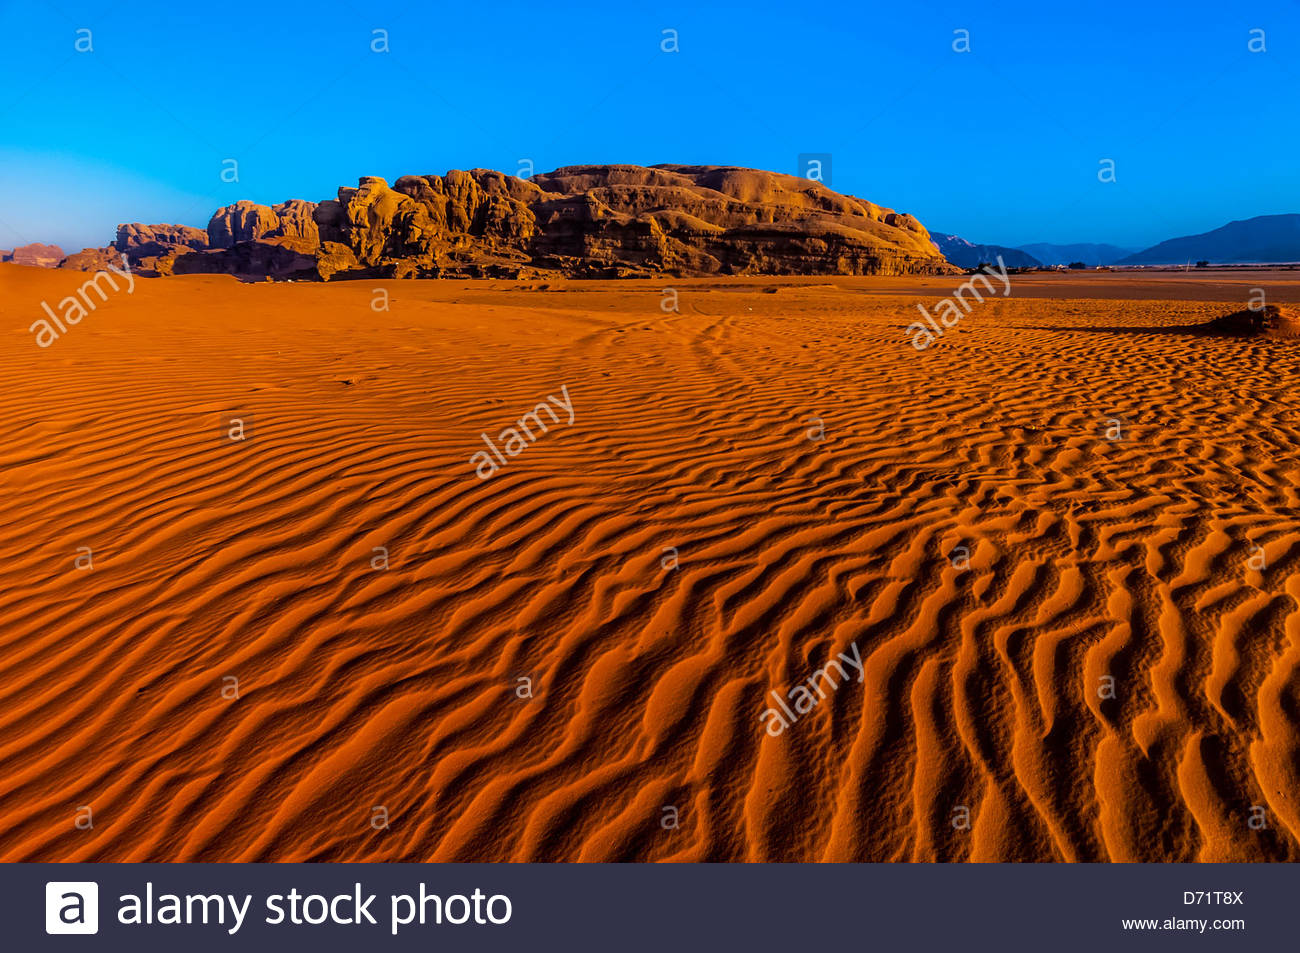 Arabian Desert at Wadi Rum, Jordan. - Stock Image